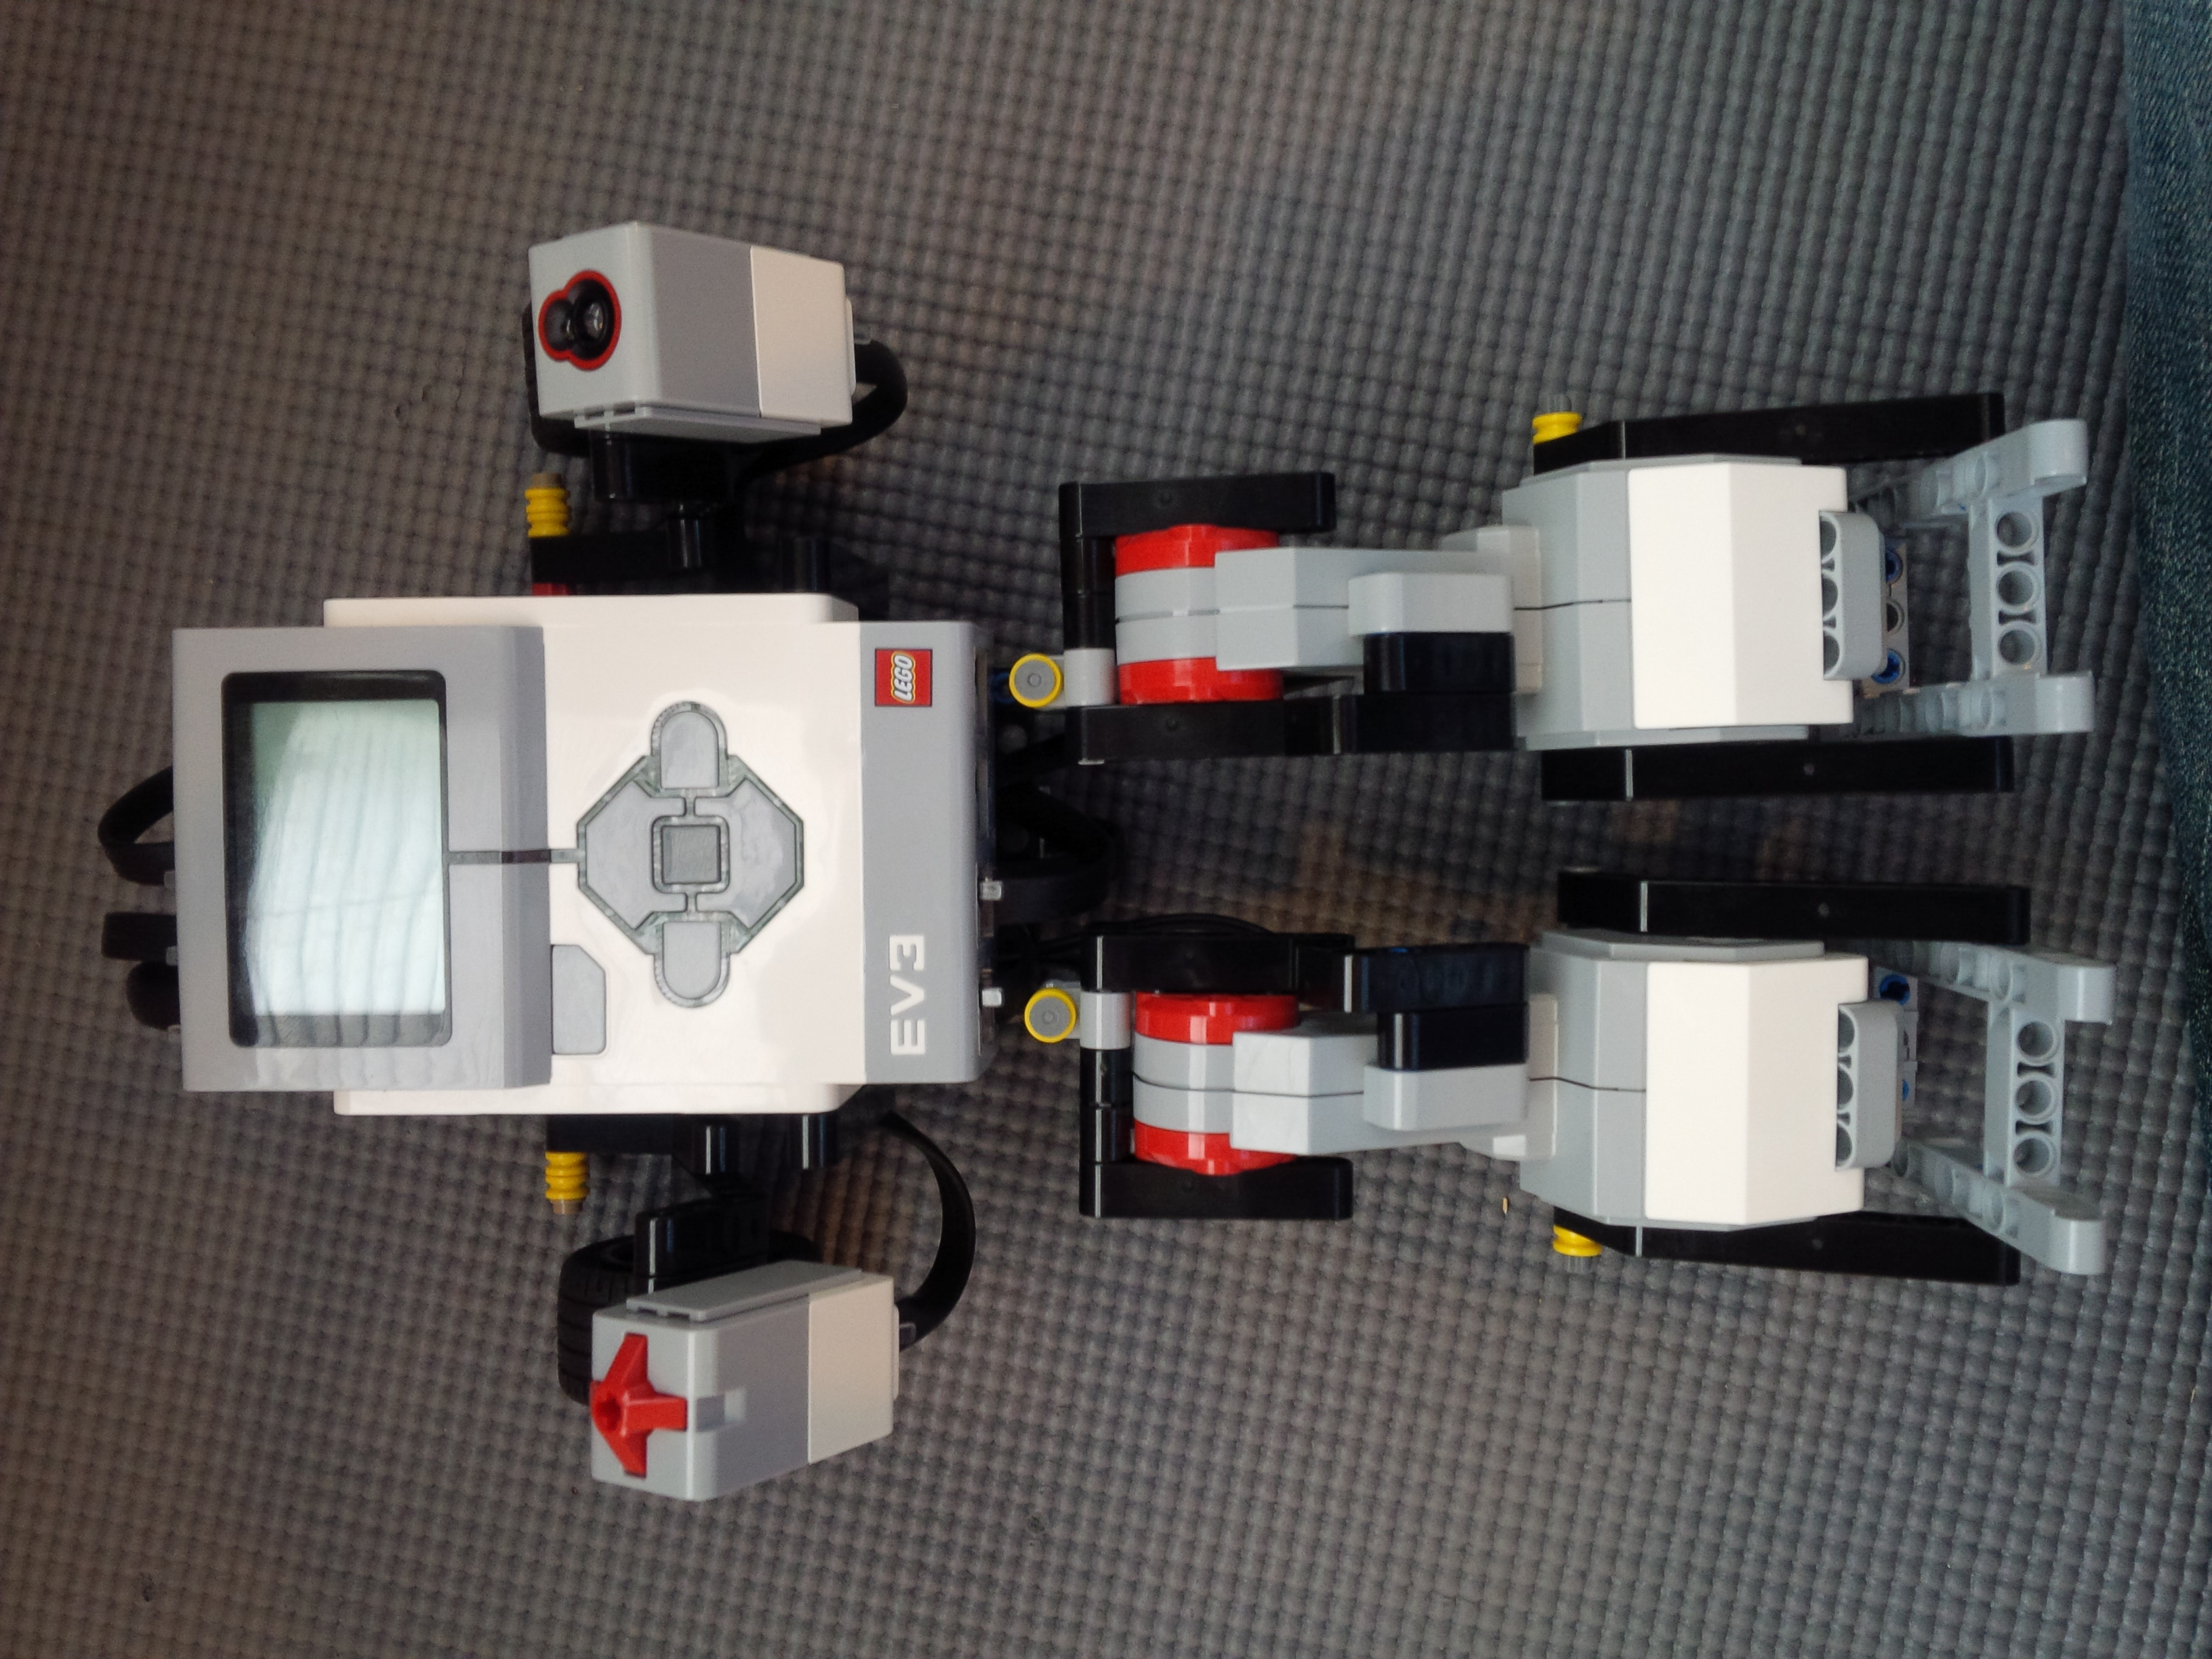 Front view of Lego Mindstorms Dancing Robot